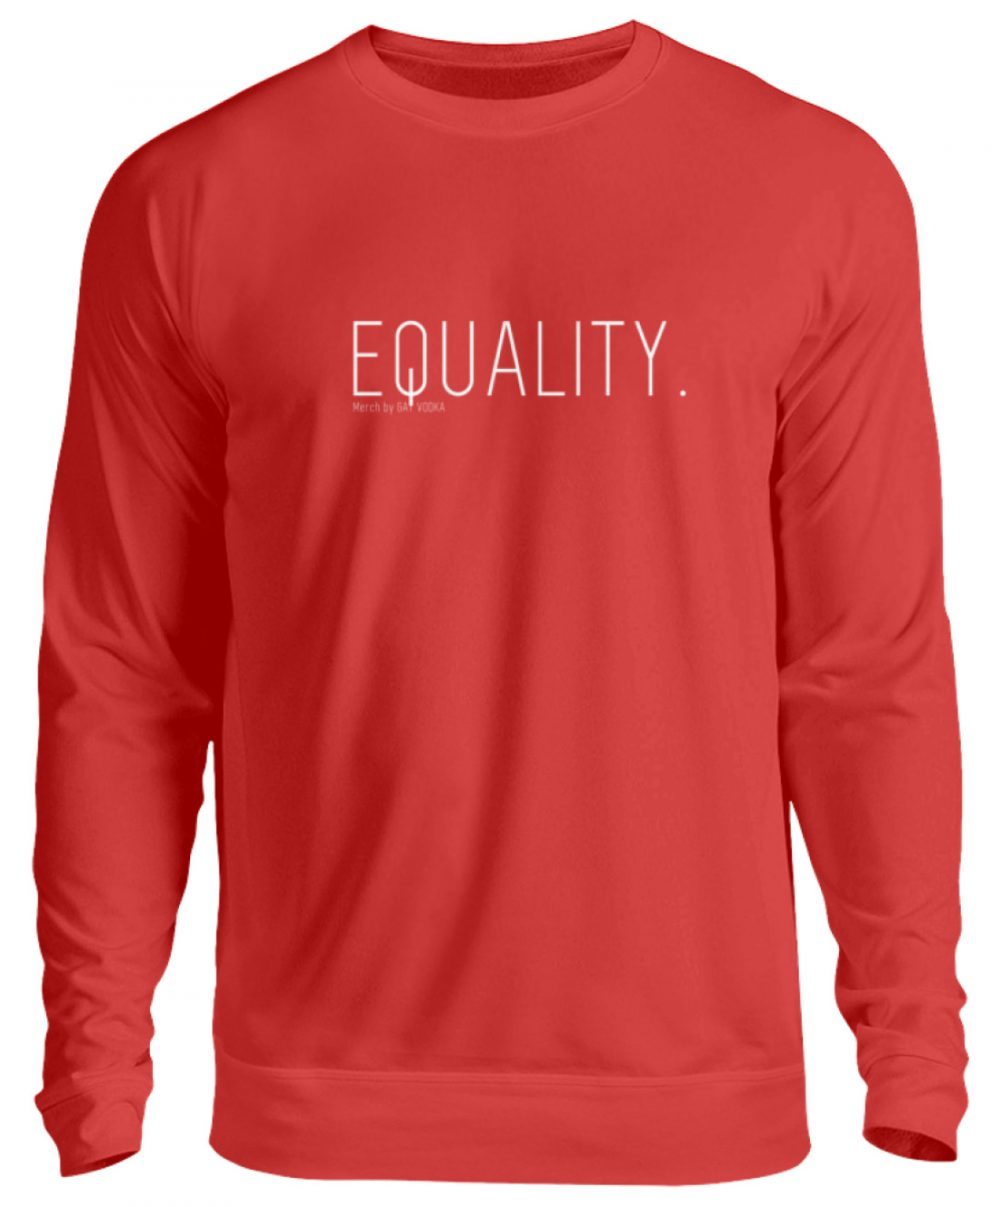 EQUALITY. - Unisex Pullover-1565